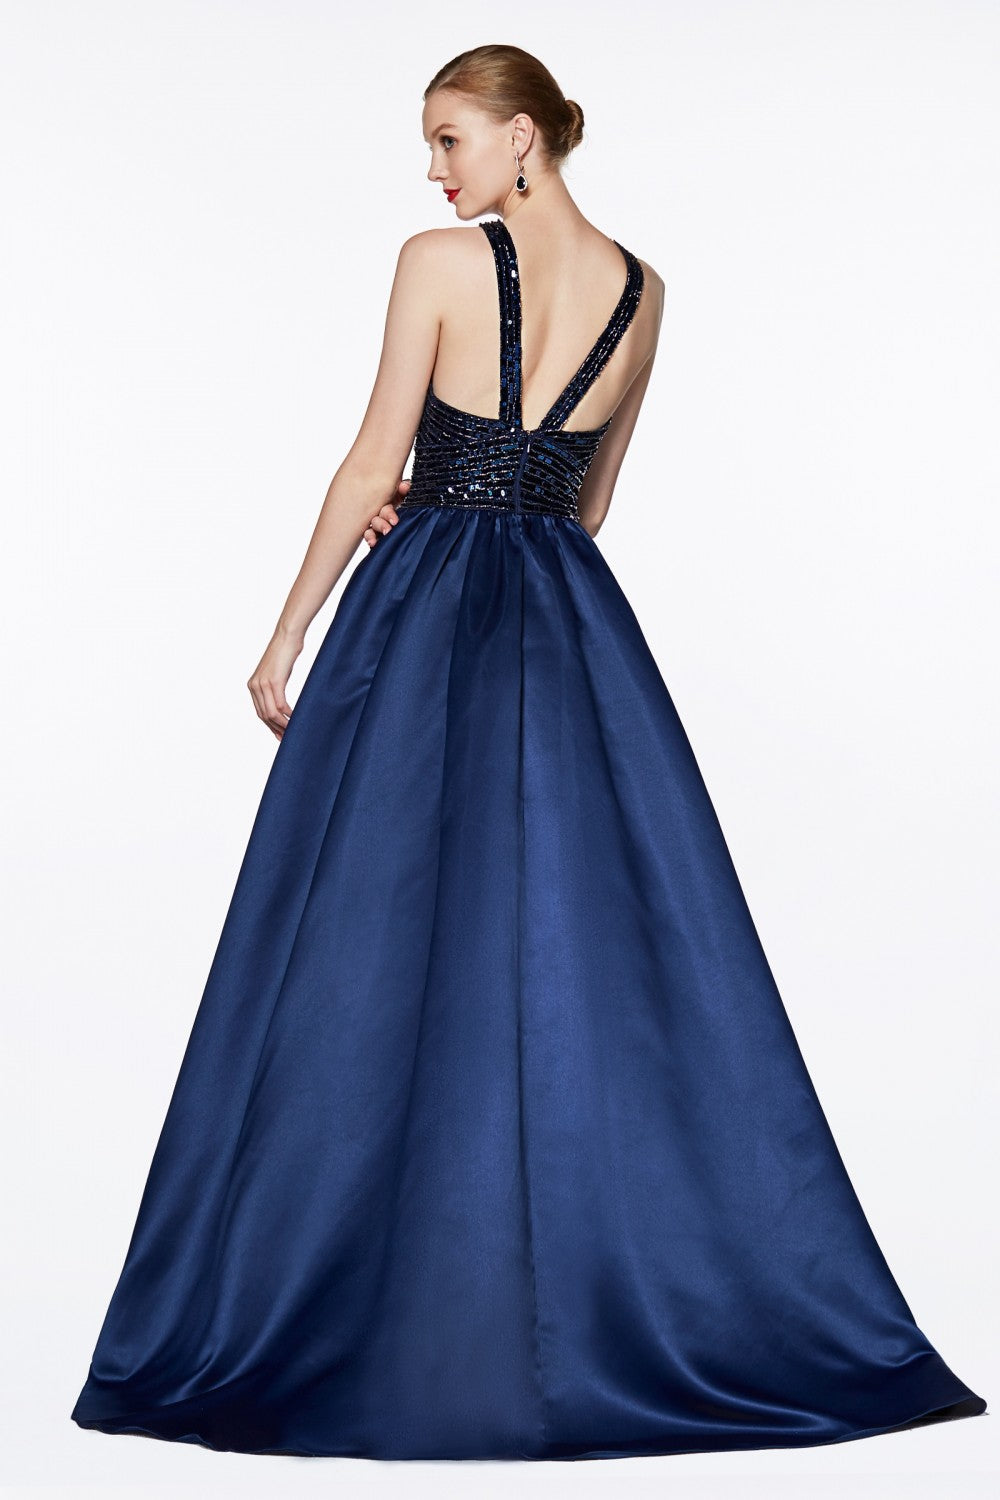 Satin Ball Gown With Beaded Criss Cross Keyhole Neckline And Strappy Back